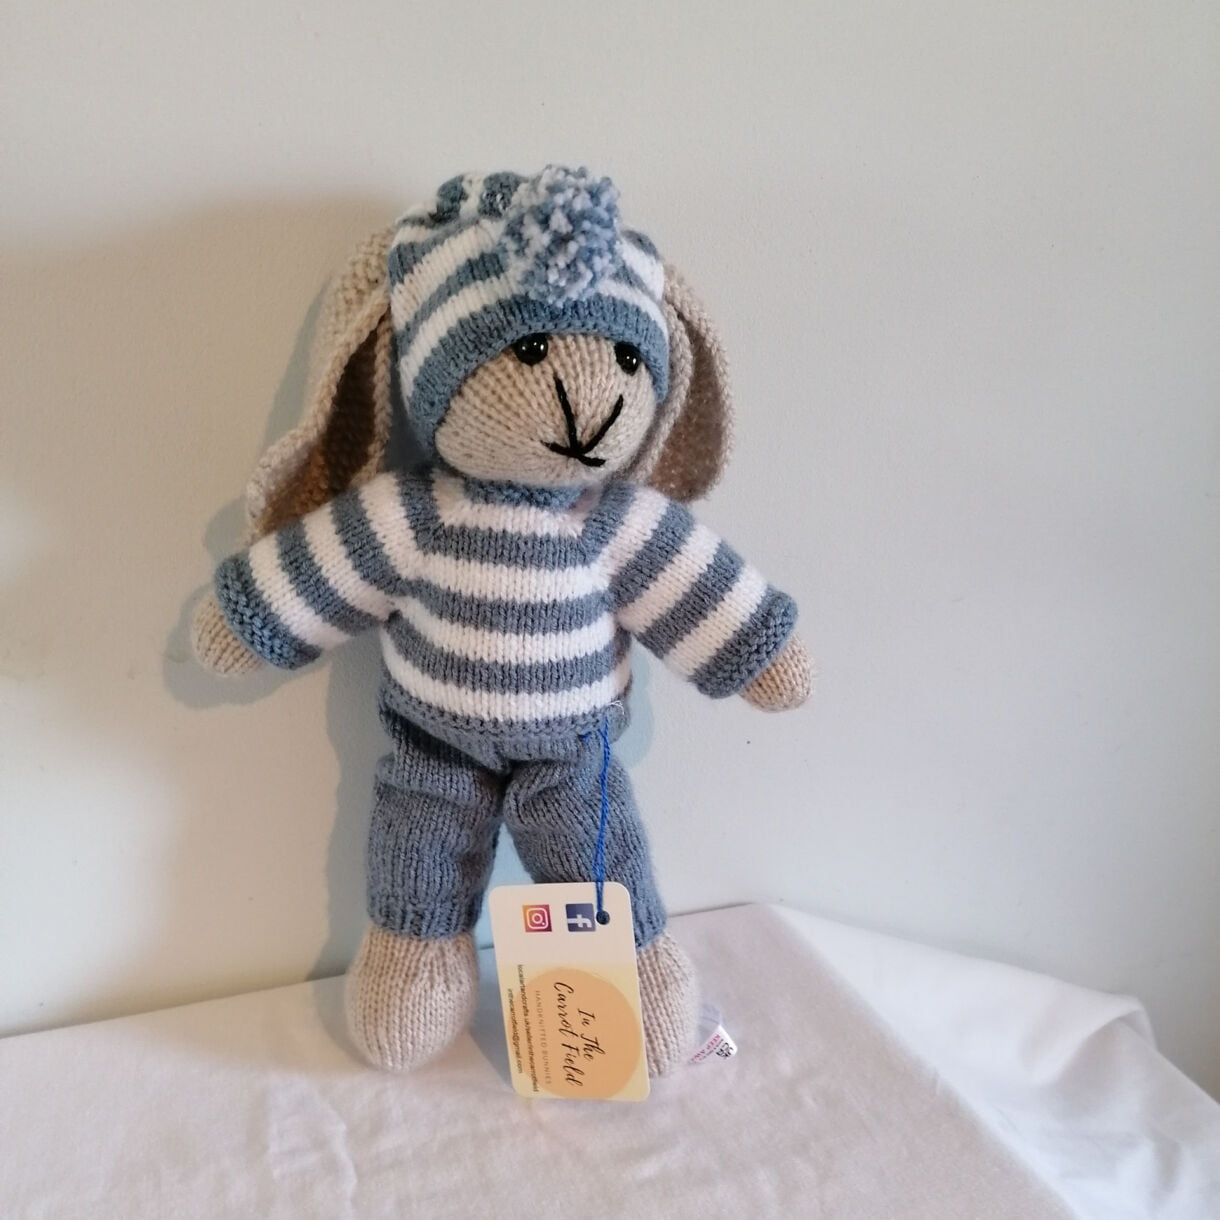 Hand Knitted Denim Boy Bunny, from The Bedtime Collection